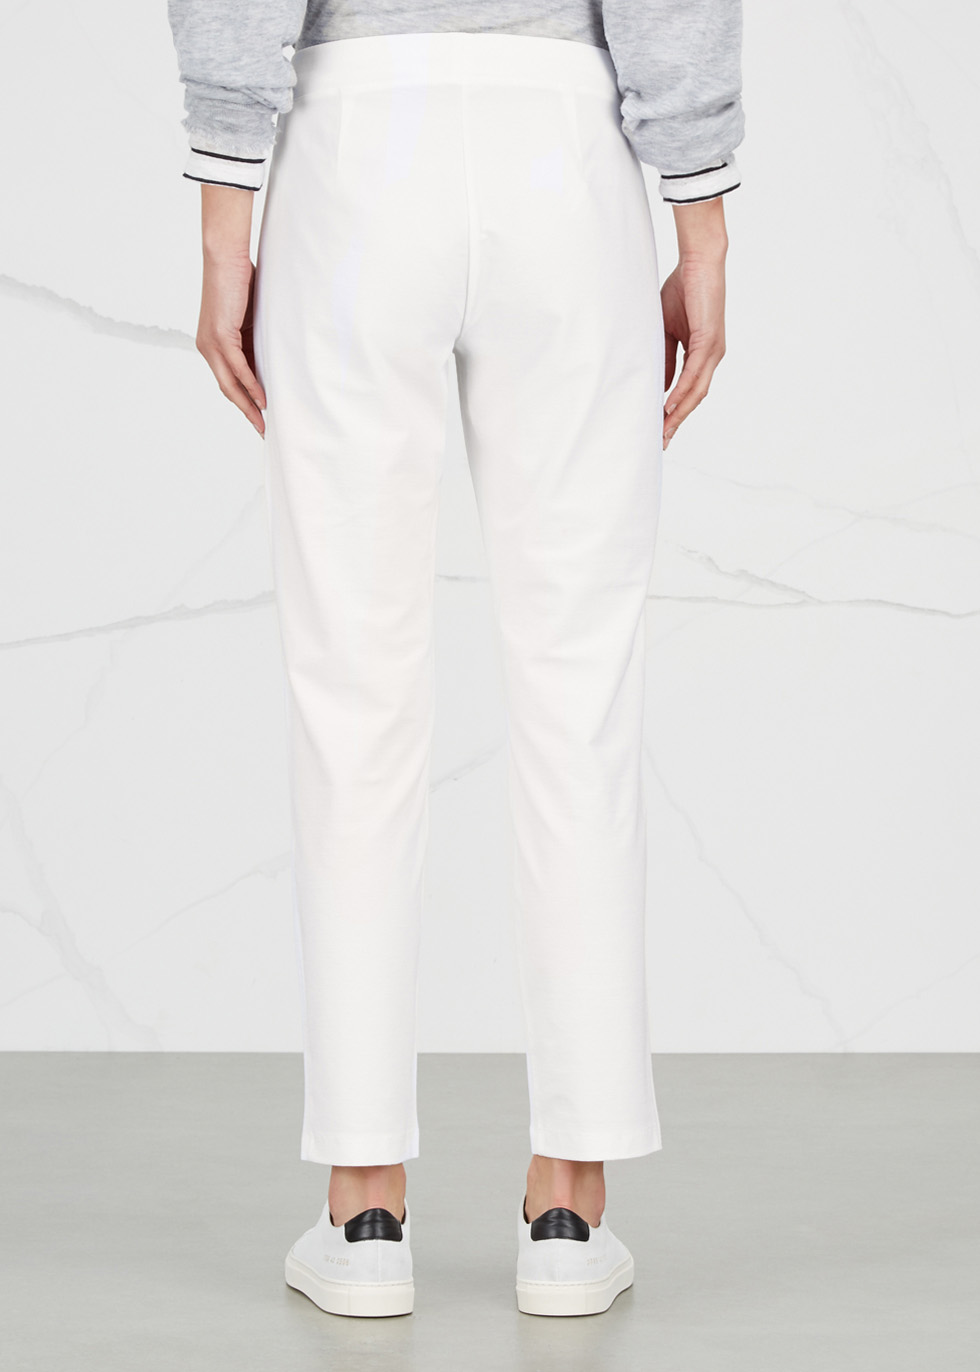 System white slim-leg trousers - EILEEN FISHER